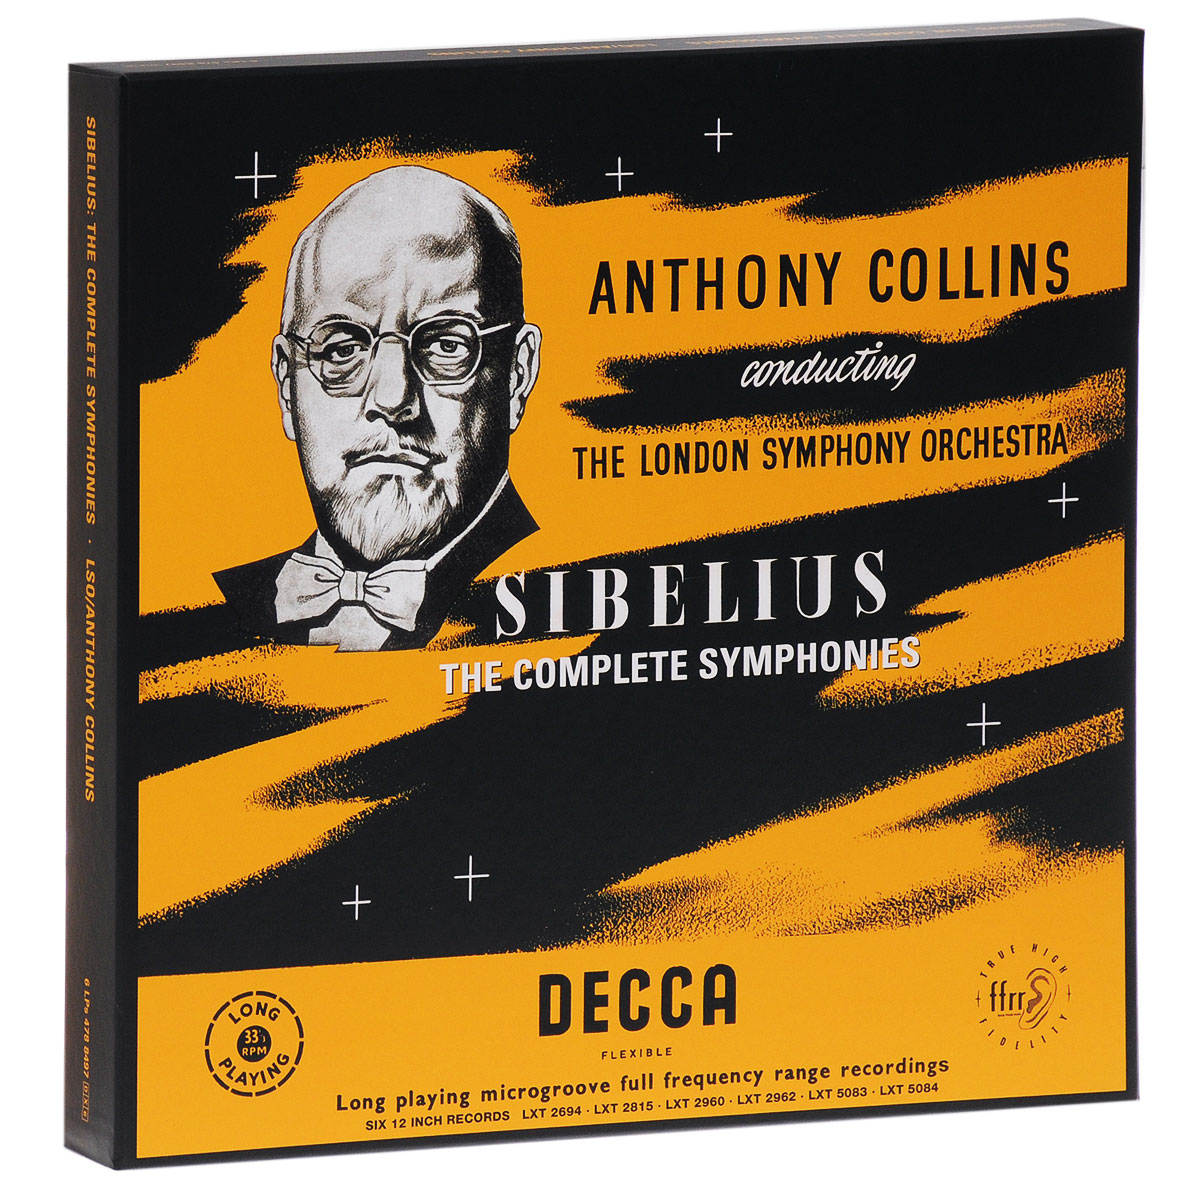 Энтони Коллинз,The London Symphony Orchestra Anthony Collins. Sibelius. The Complete Symphonies (6 LP) phil collins singles 4 lp